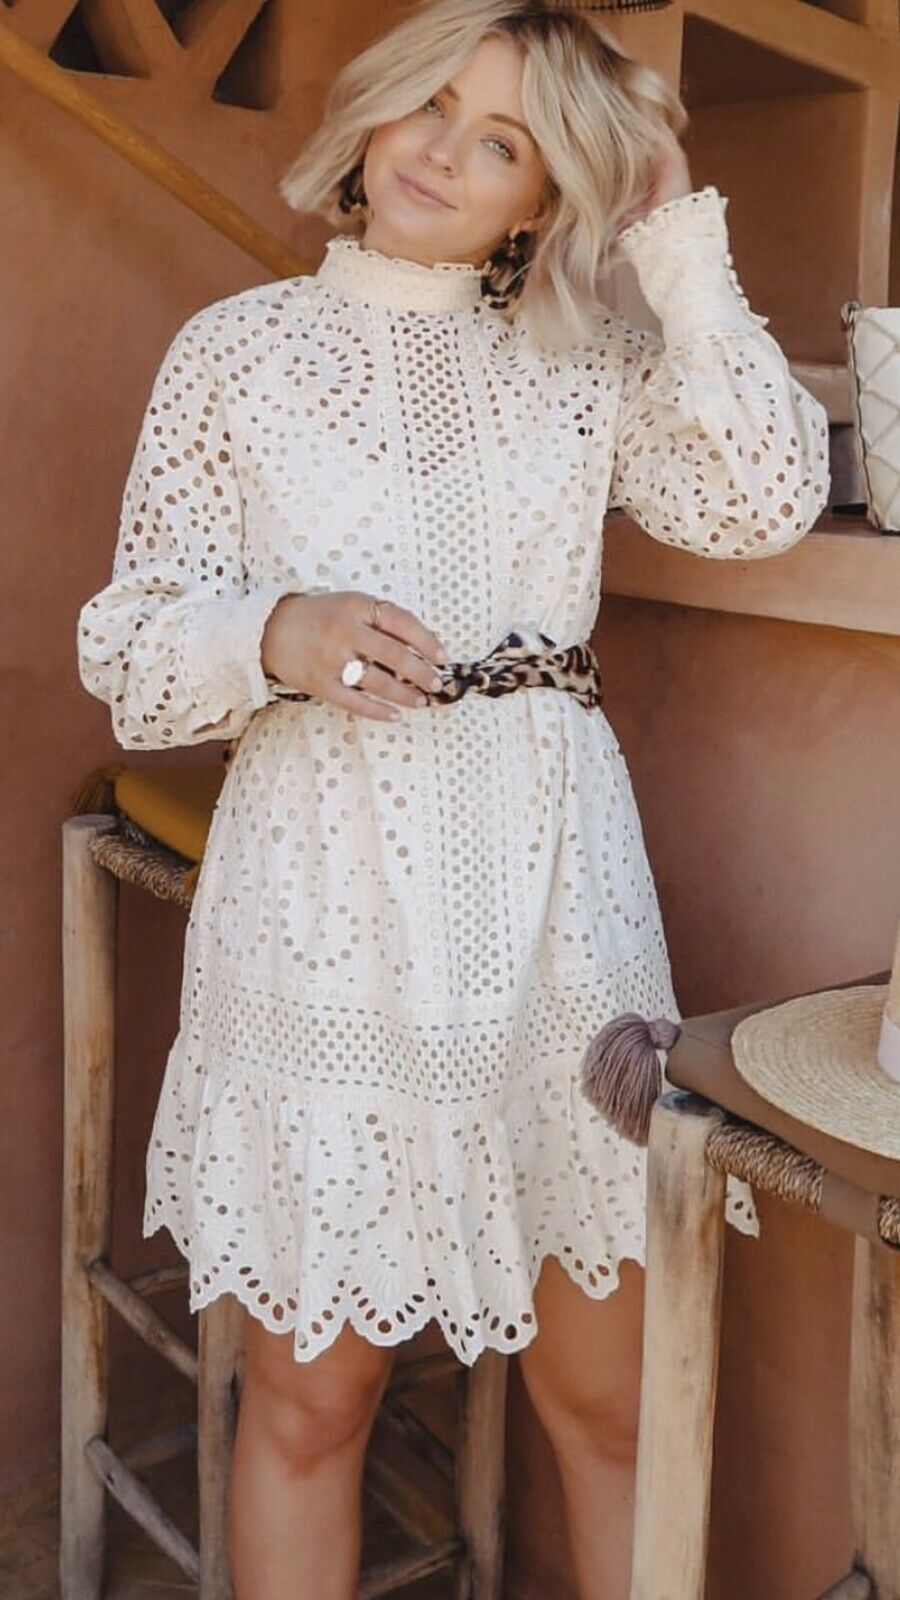 Https Www Ebay Co Uk Itm Bnwt H M Trend Broderie Anglaise Tunic Cream Dress Bloggers Sold Out Uk Large L 264312399525 Hash Item3d8a3f26a5 G 21aaaoswdp Vestidos